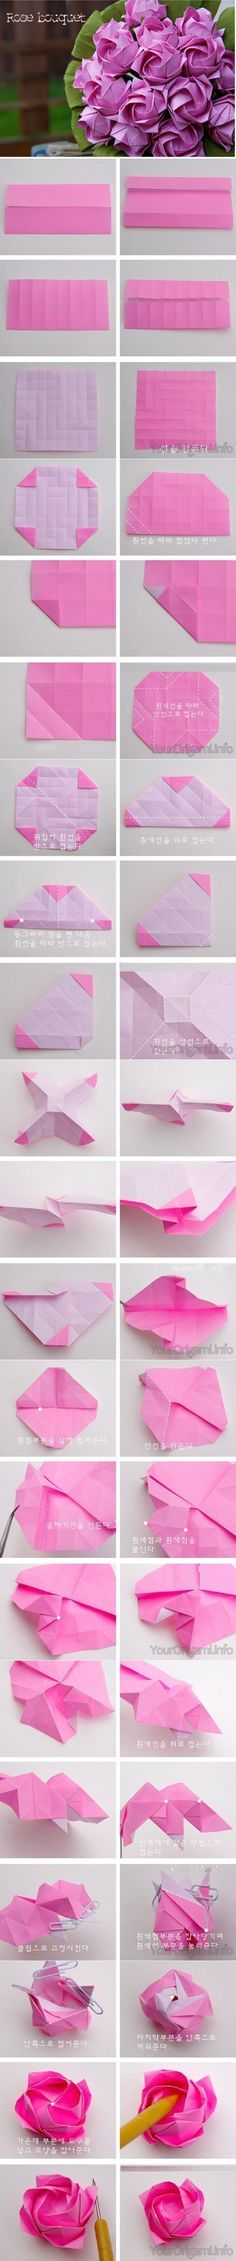 Looking for a new craft? Give origami a try! We've got 40 fun how to origami projects for you – from zoo animals, animals you'd keep as pets, insects, flowers and even containers you could put a gift or a treasure in. One of the best things about origami is that you can start as …